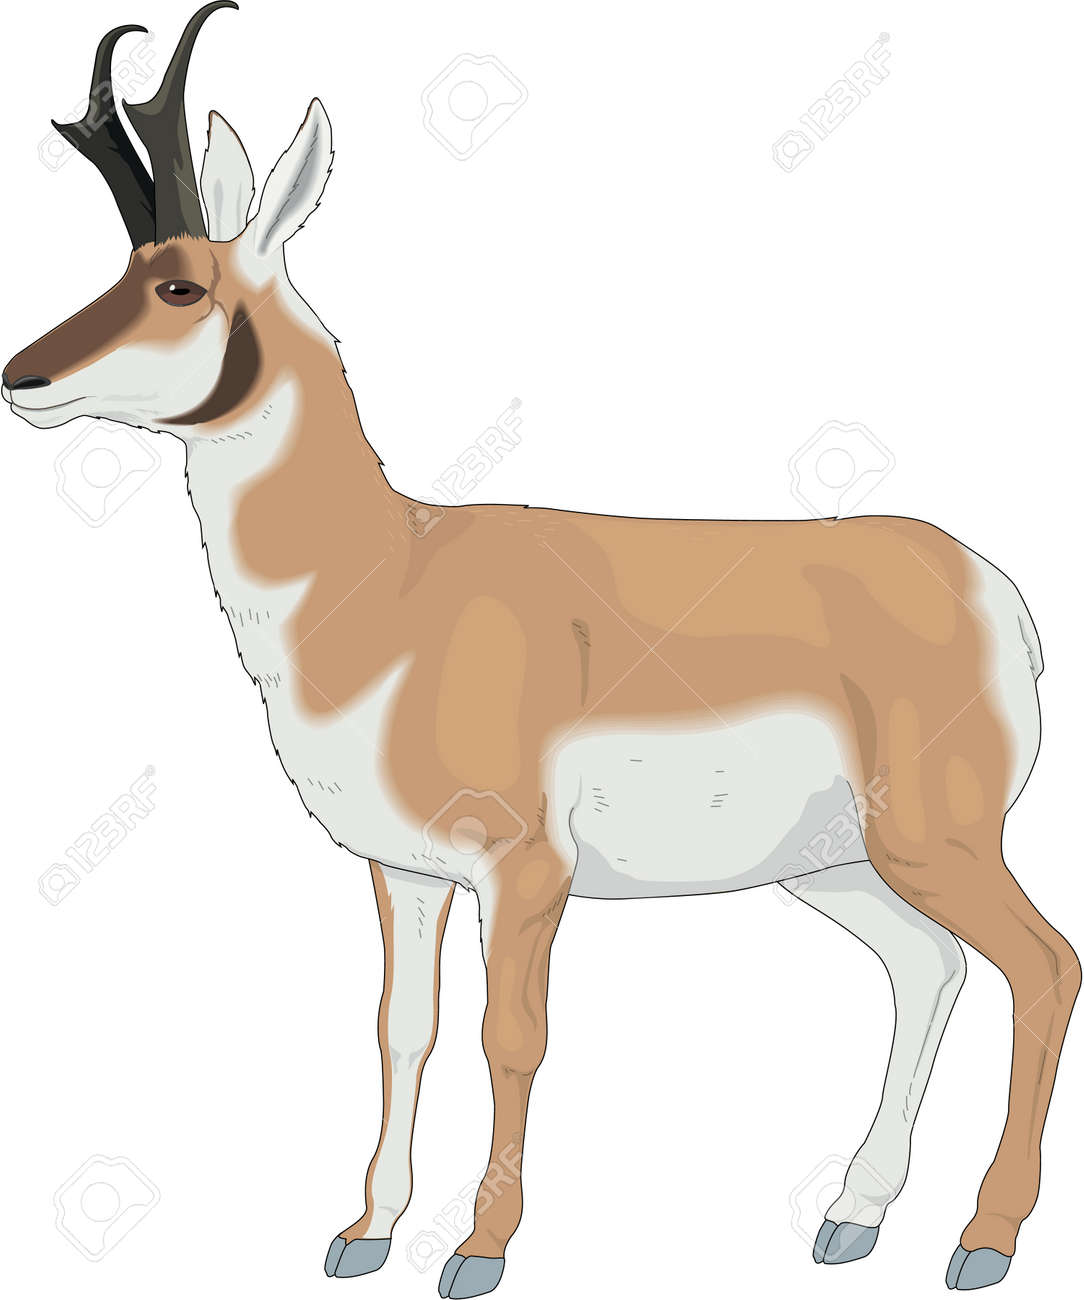 pronghorn antelope illustration royalty free cliparts vectors and rh 123rf com antelope clipart black and white pronghorn antelope clipart